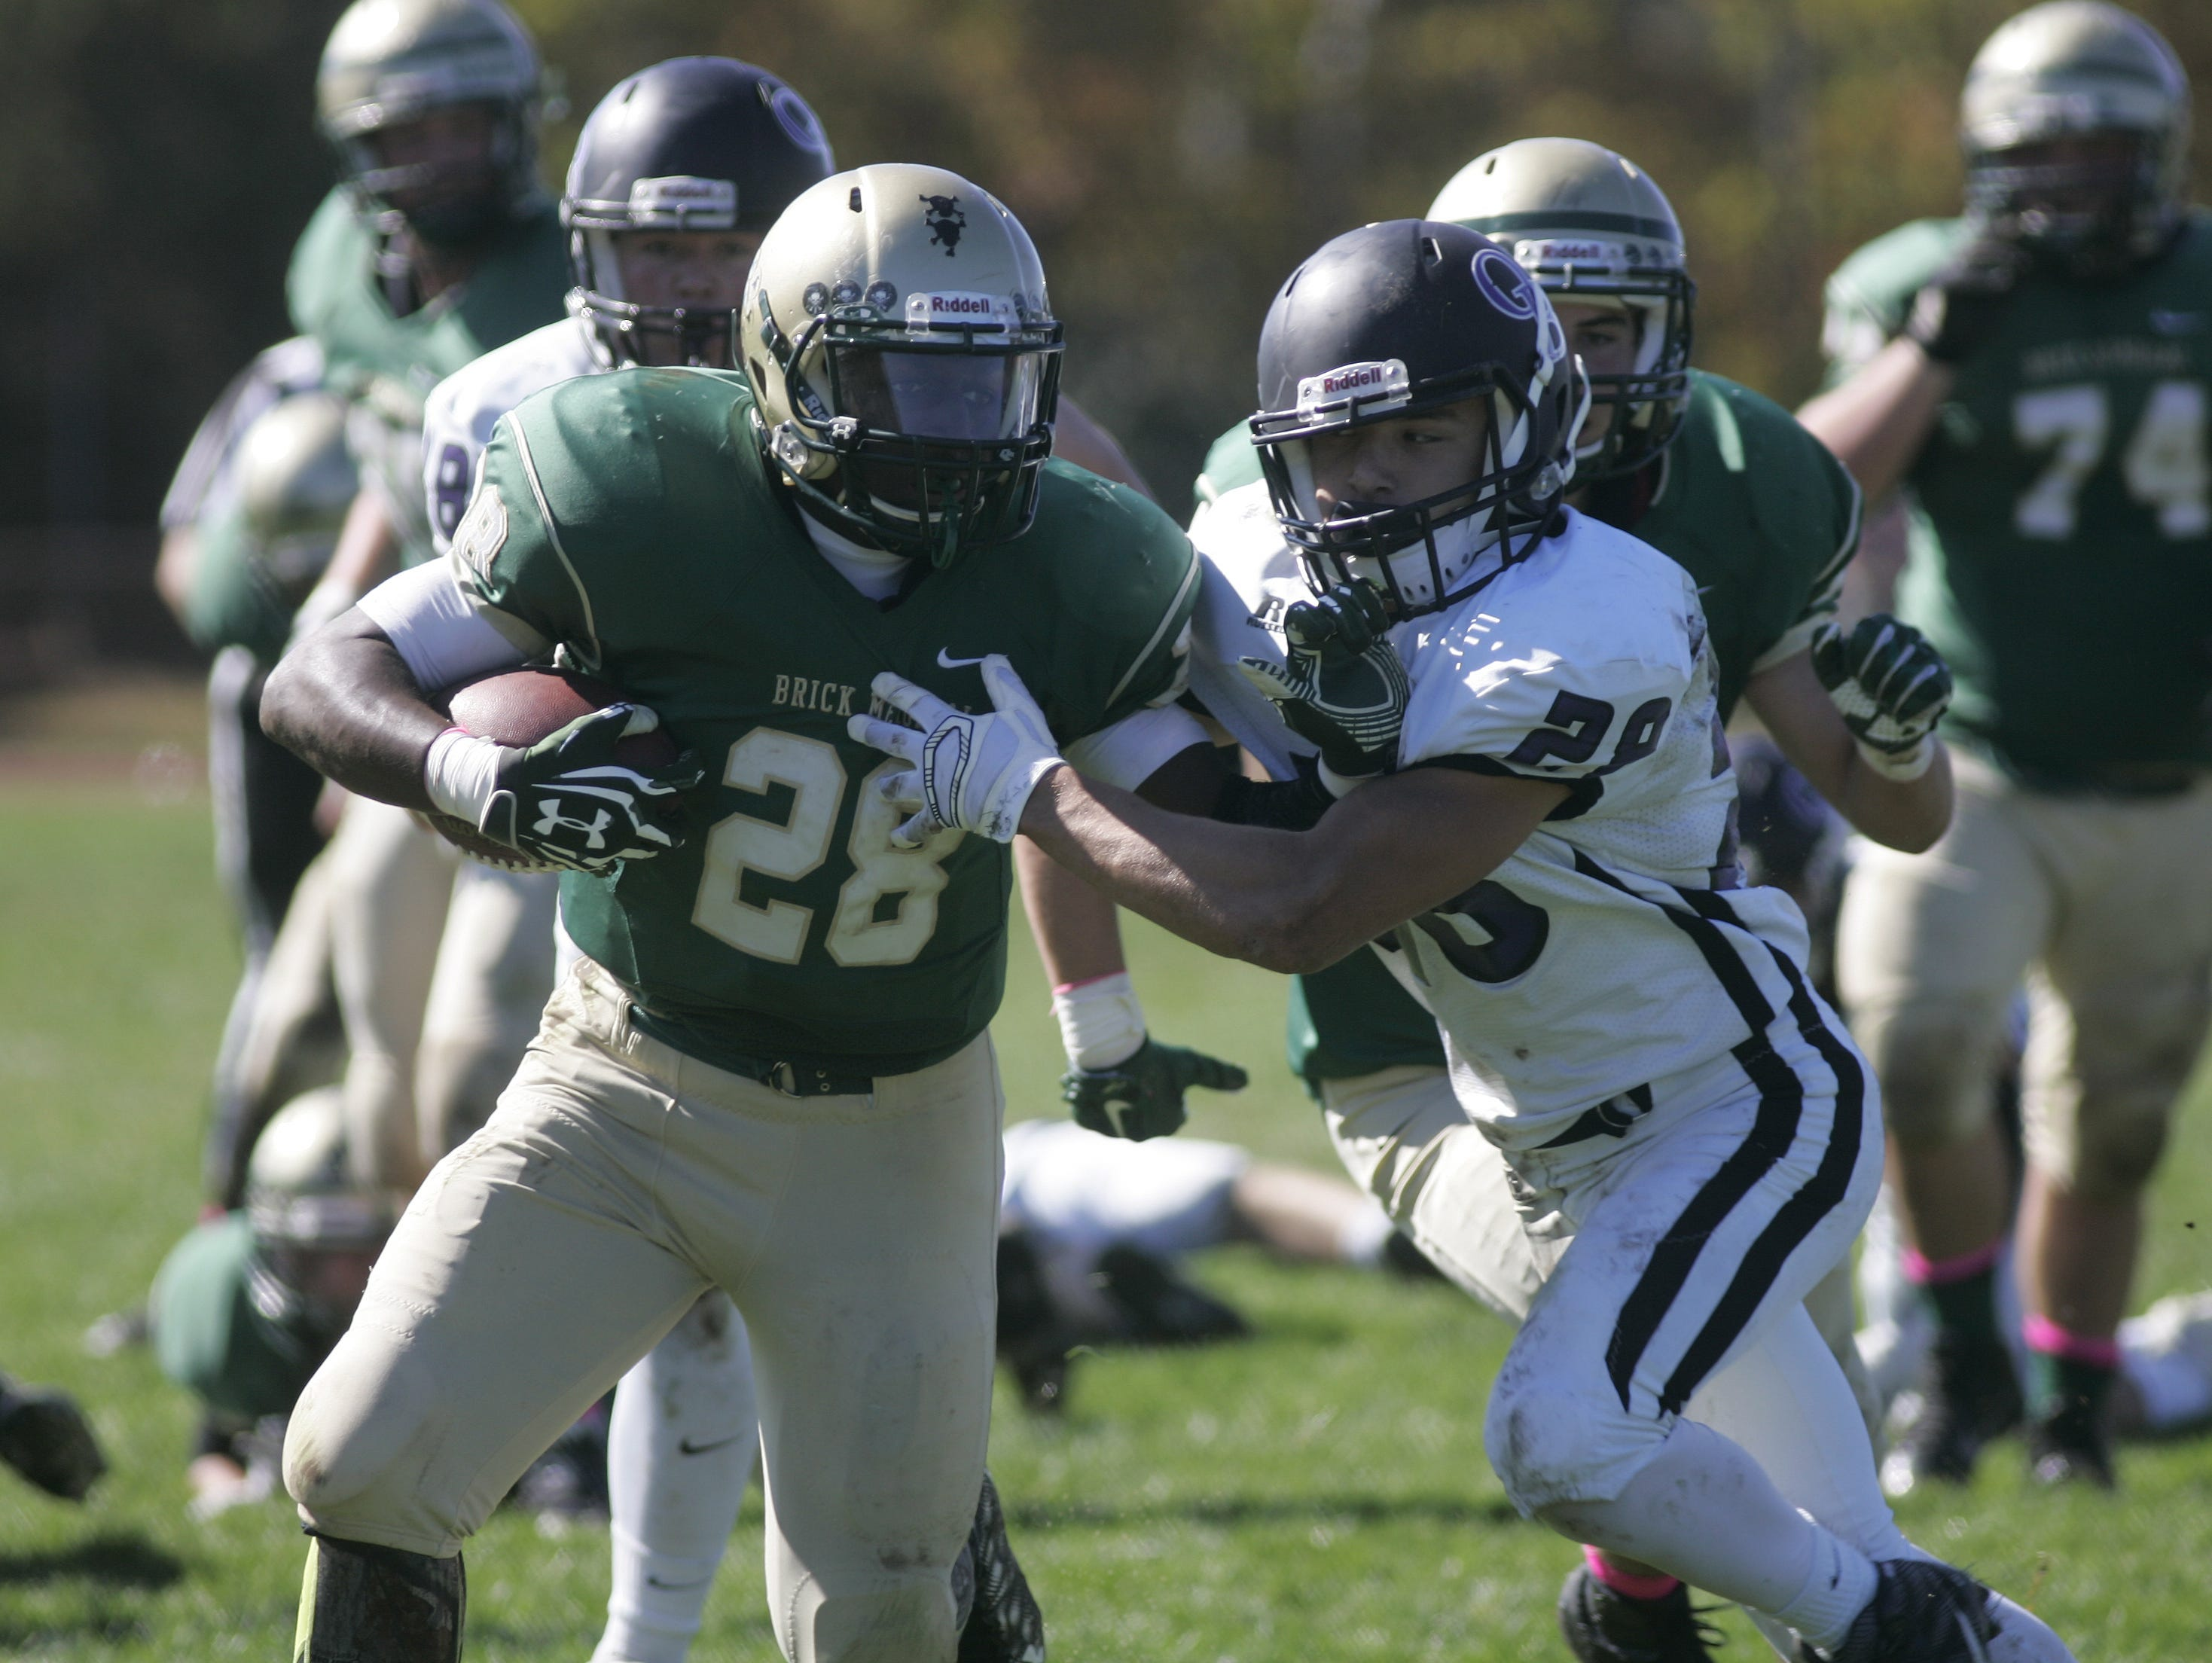 Brick Memorial sophomore running back Tony Thorpe will be a key player in the NJSIAA Central Group IV championship game.